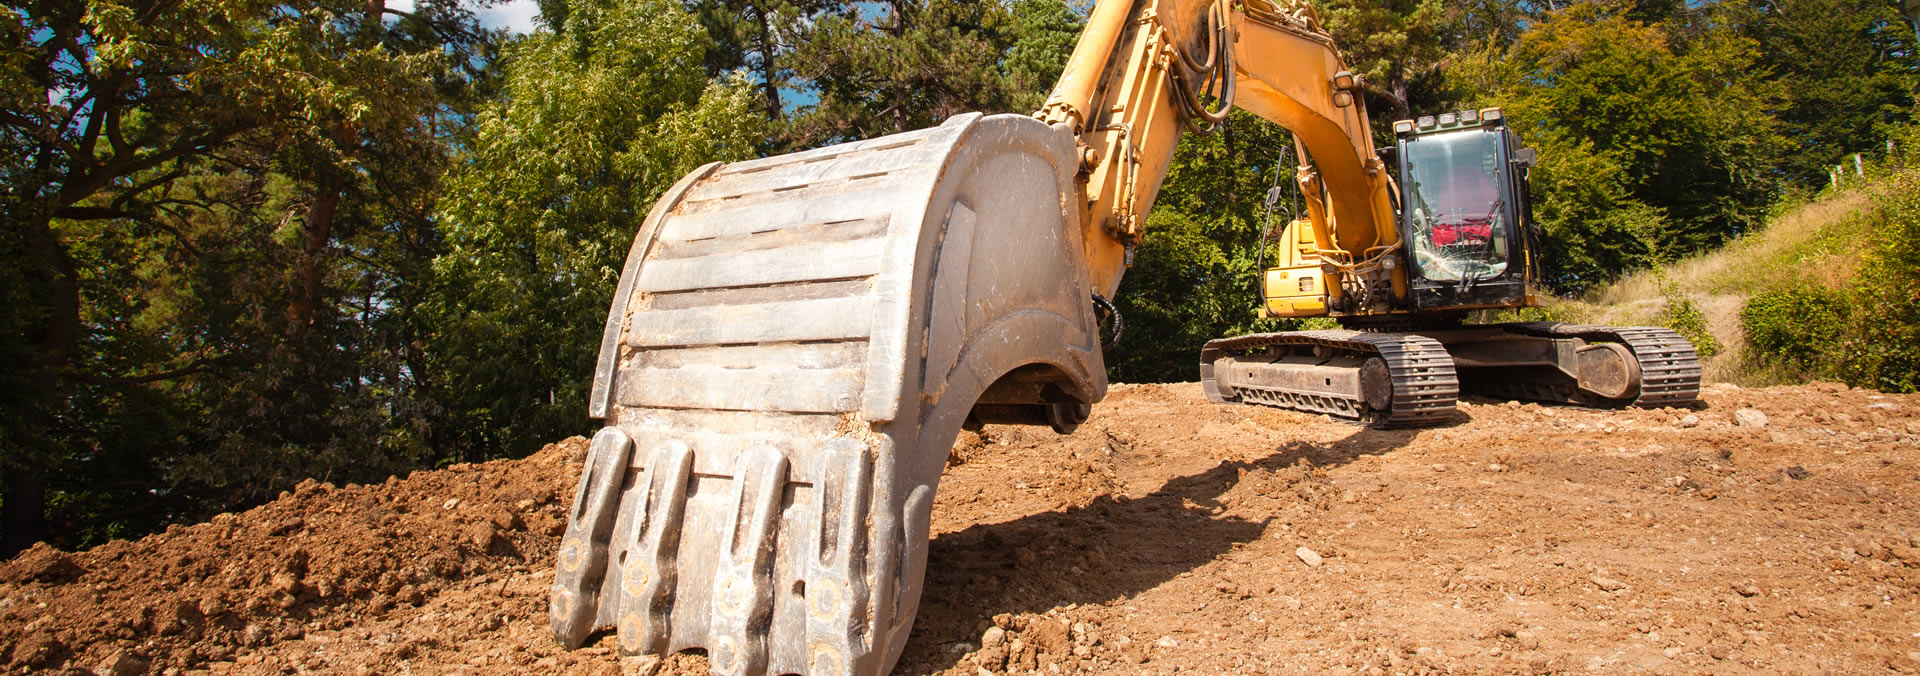 Acquired JD Excavation –  Added Excavation Services